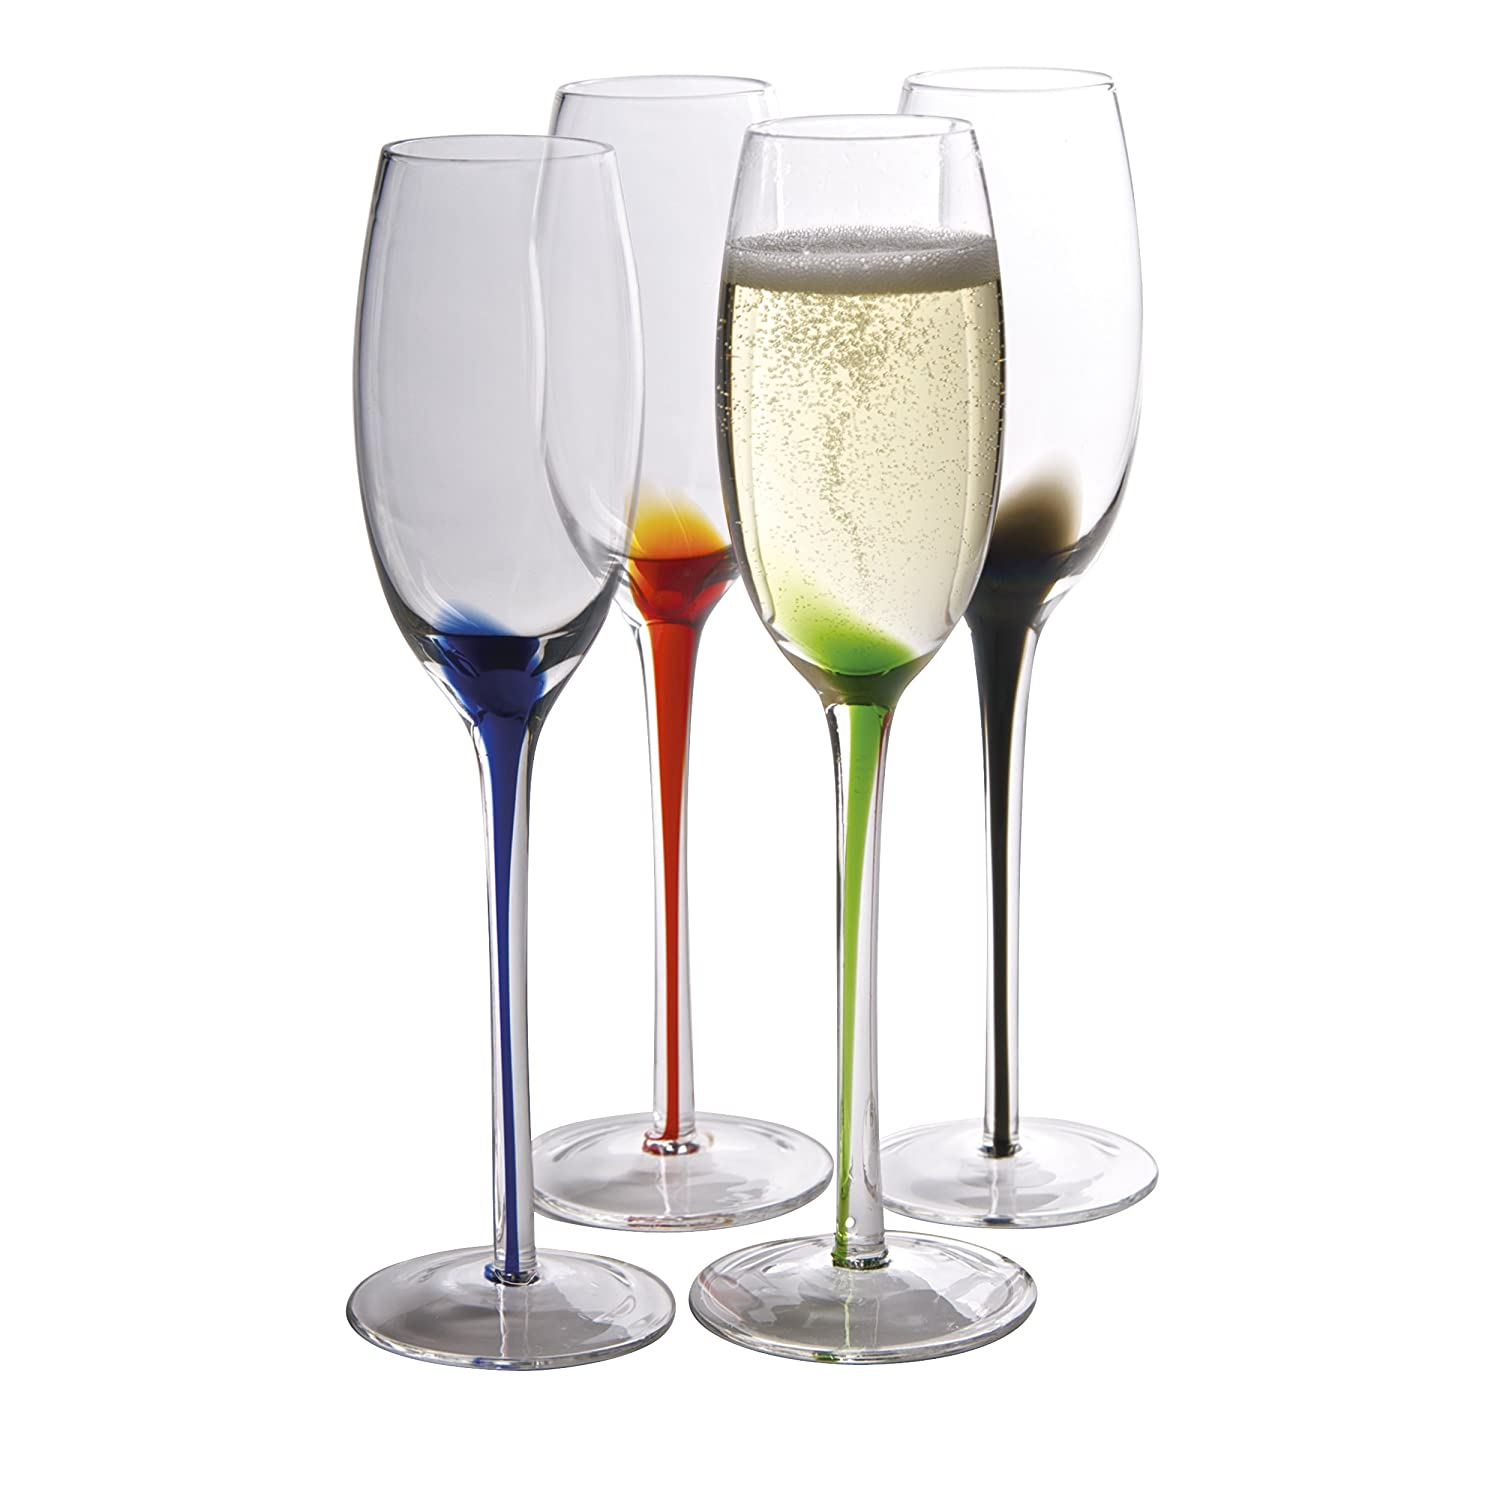 Artland Splash Flute Glasses (Set of 4), Multicolor, 7 oz 60901